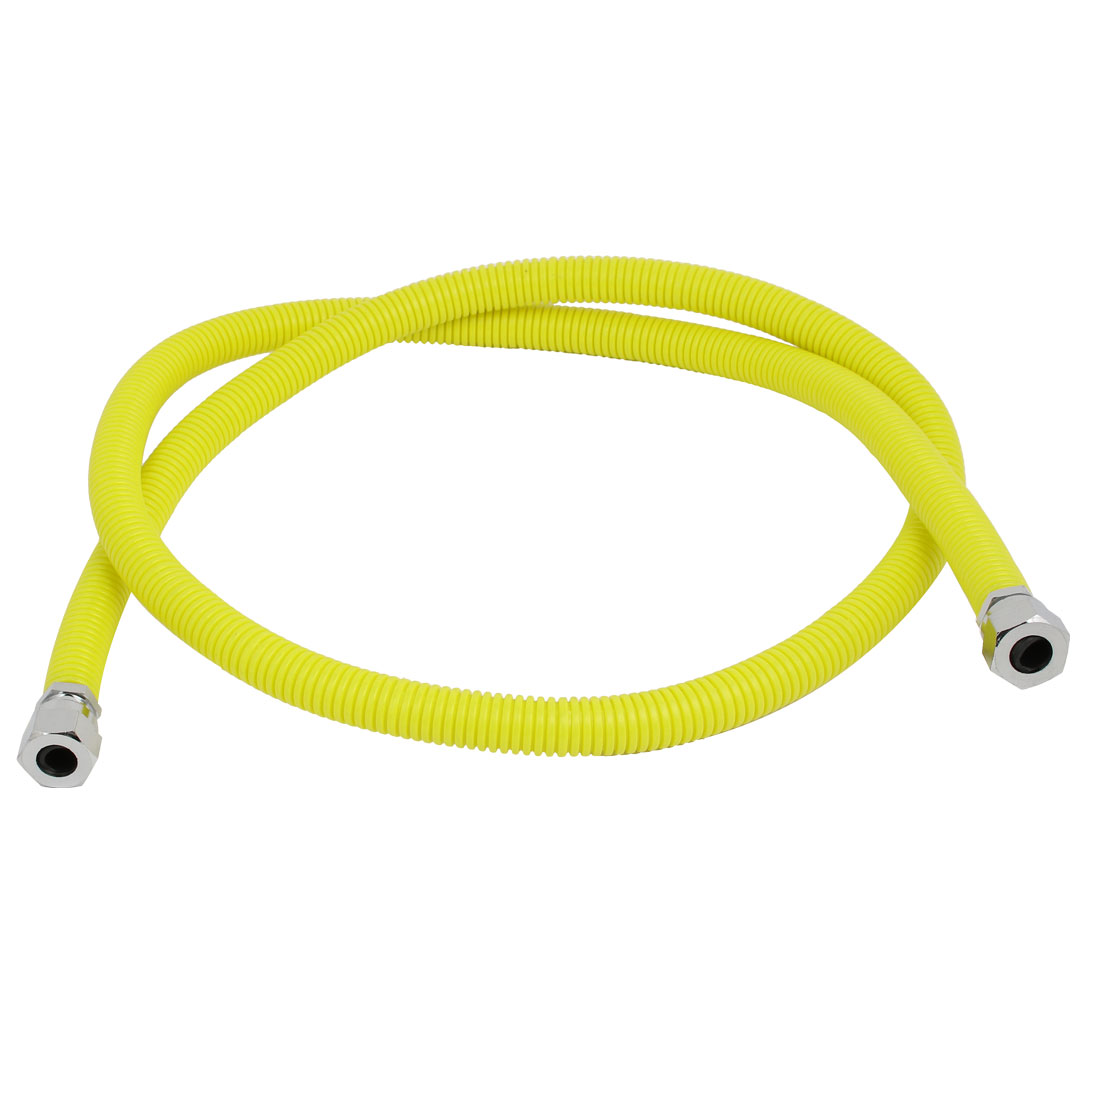 304 Stainless Steel 1.5M Length Flexible Gas Range Connector Pipe Supply Hose